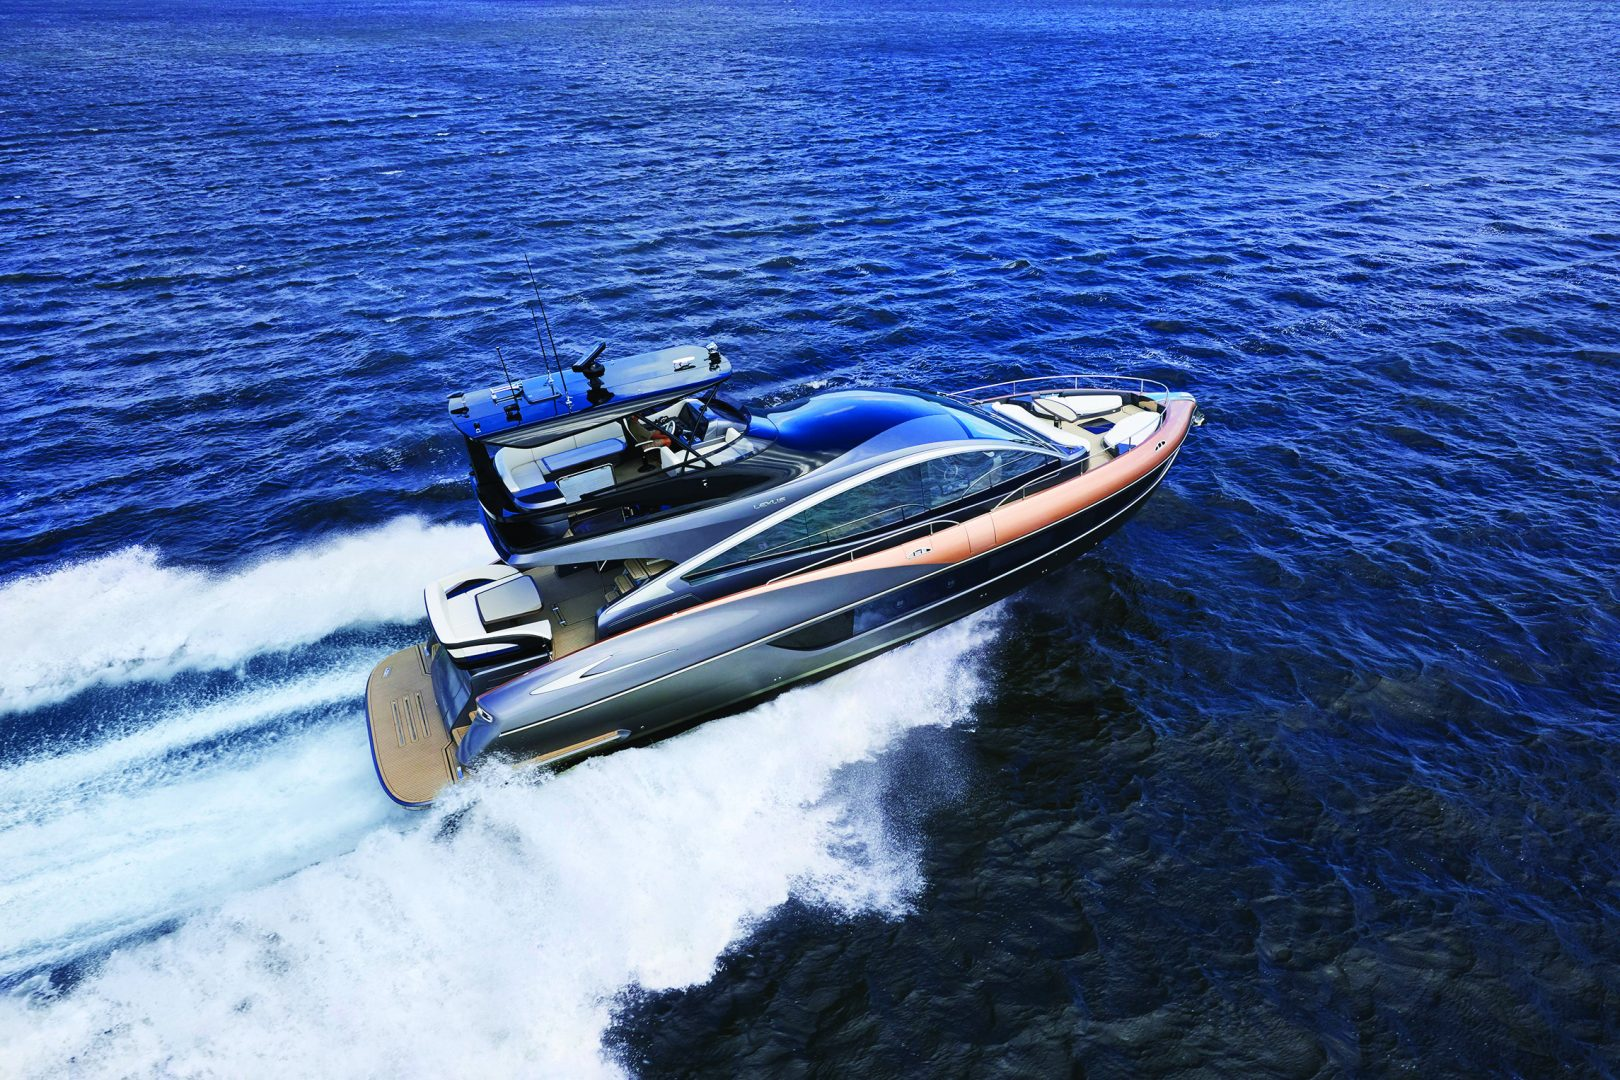 IMAGE-Lexus Yacht LY650, globally premiered yesterday in Florida